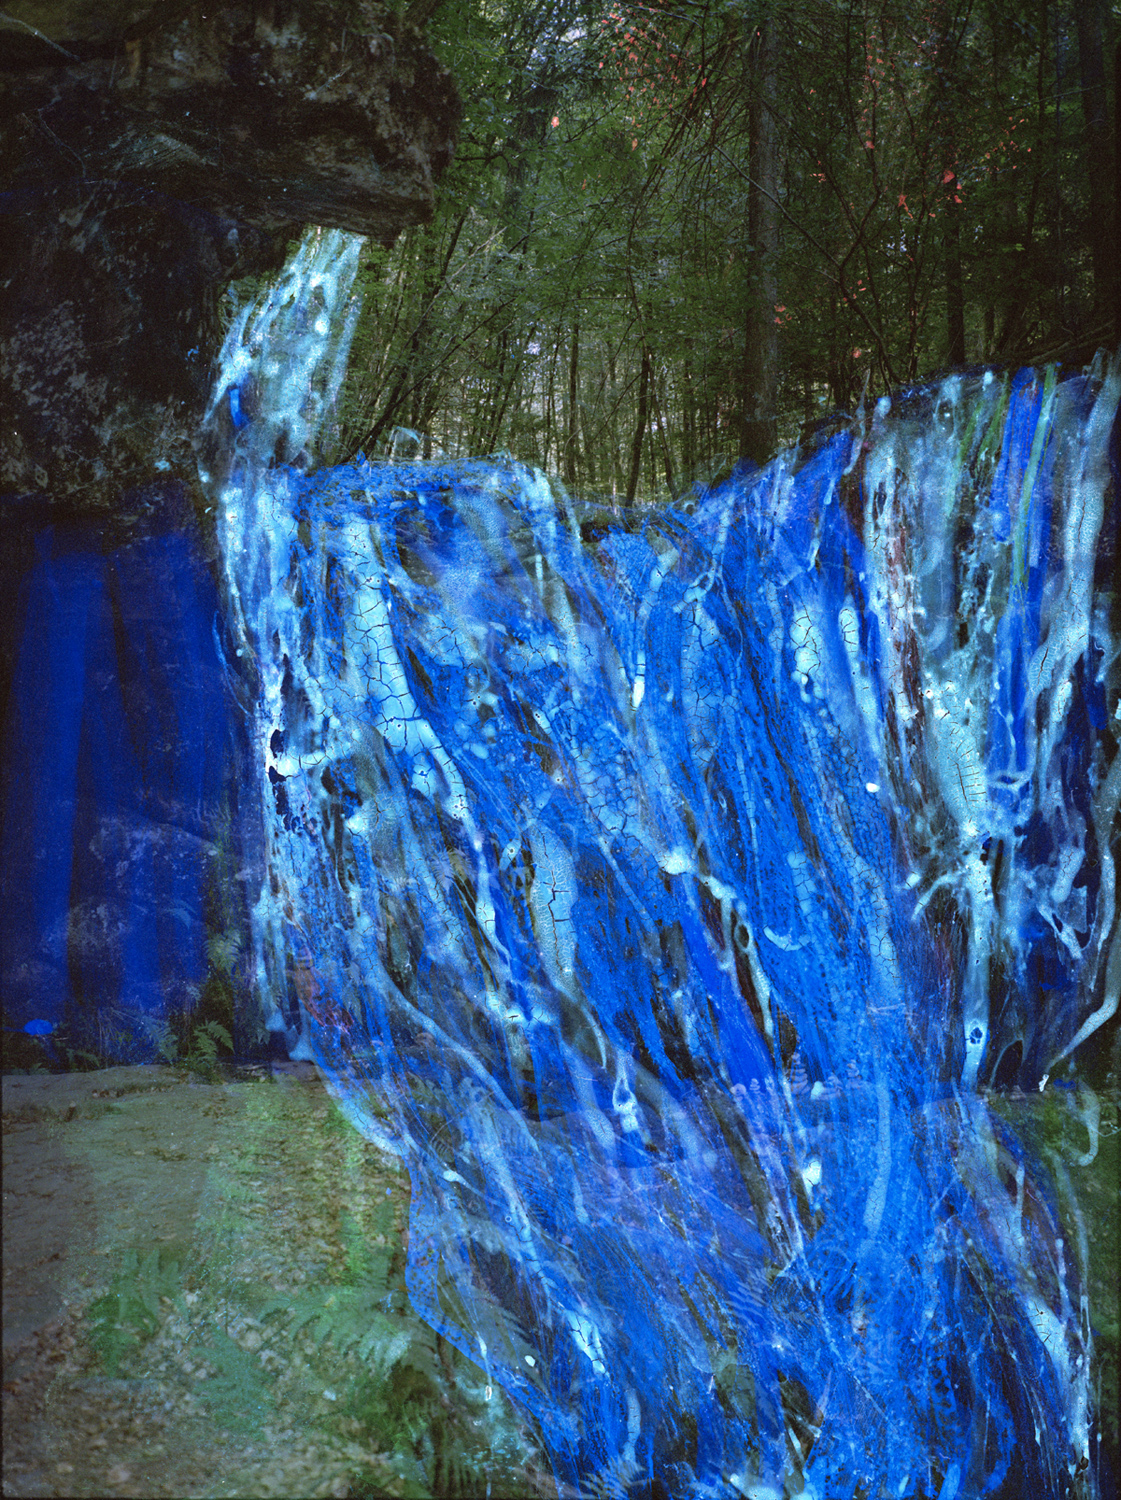 Bloedwaterval, Droiteval 2020